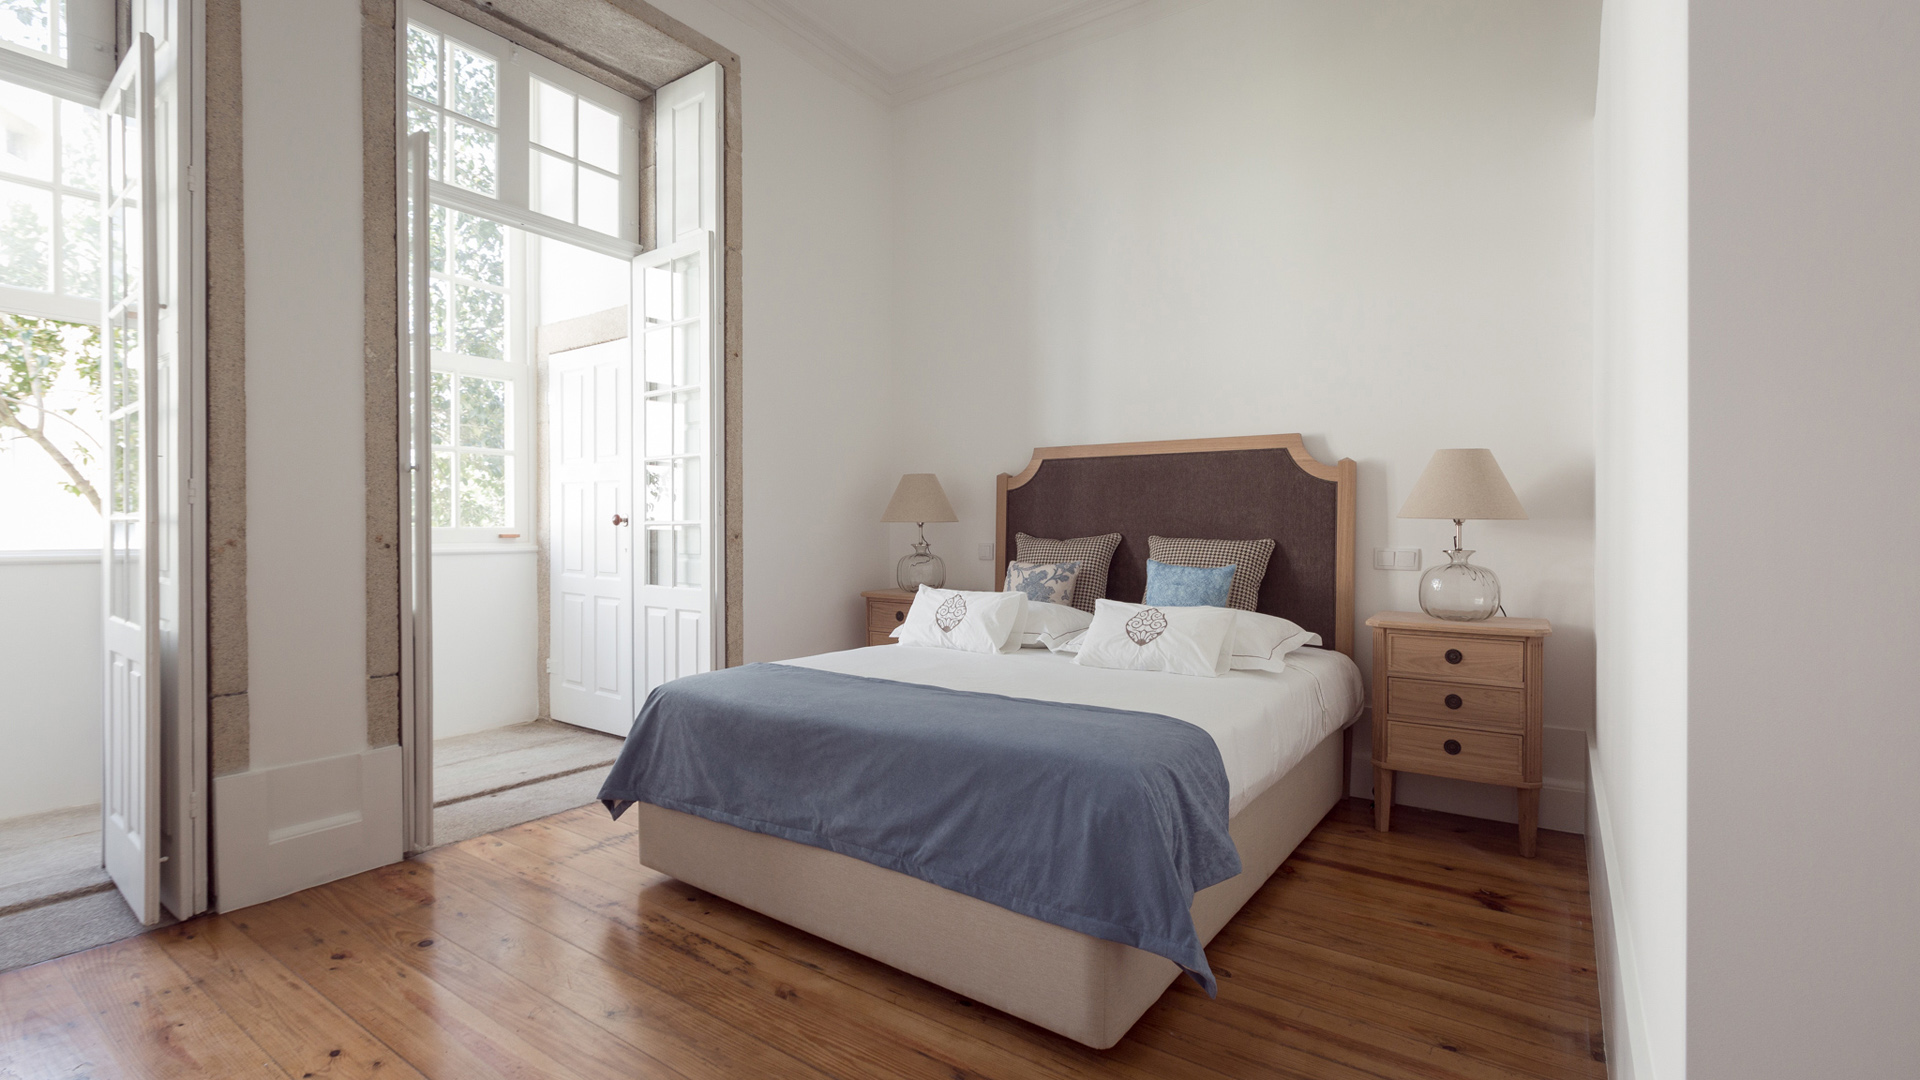 almada single parents Search for real estate in almada, setubal, portugal and find real estate listings in almada, setubal, portugal homes for sale in almada, setubal, portugal on wwwcentury21globalcom get details of properties and view photos.